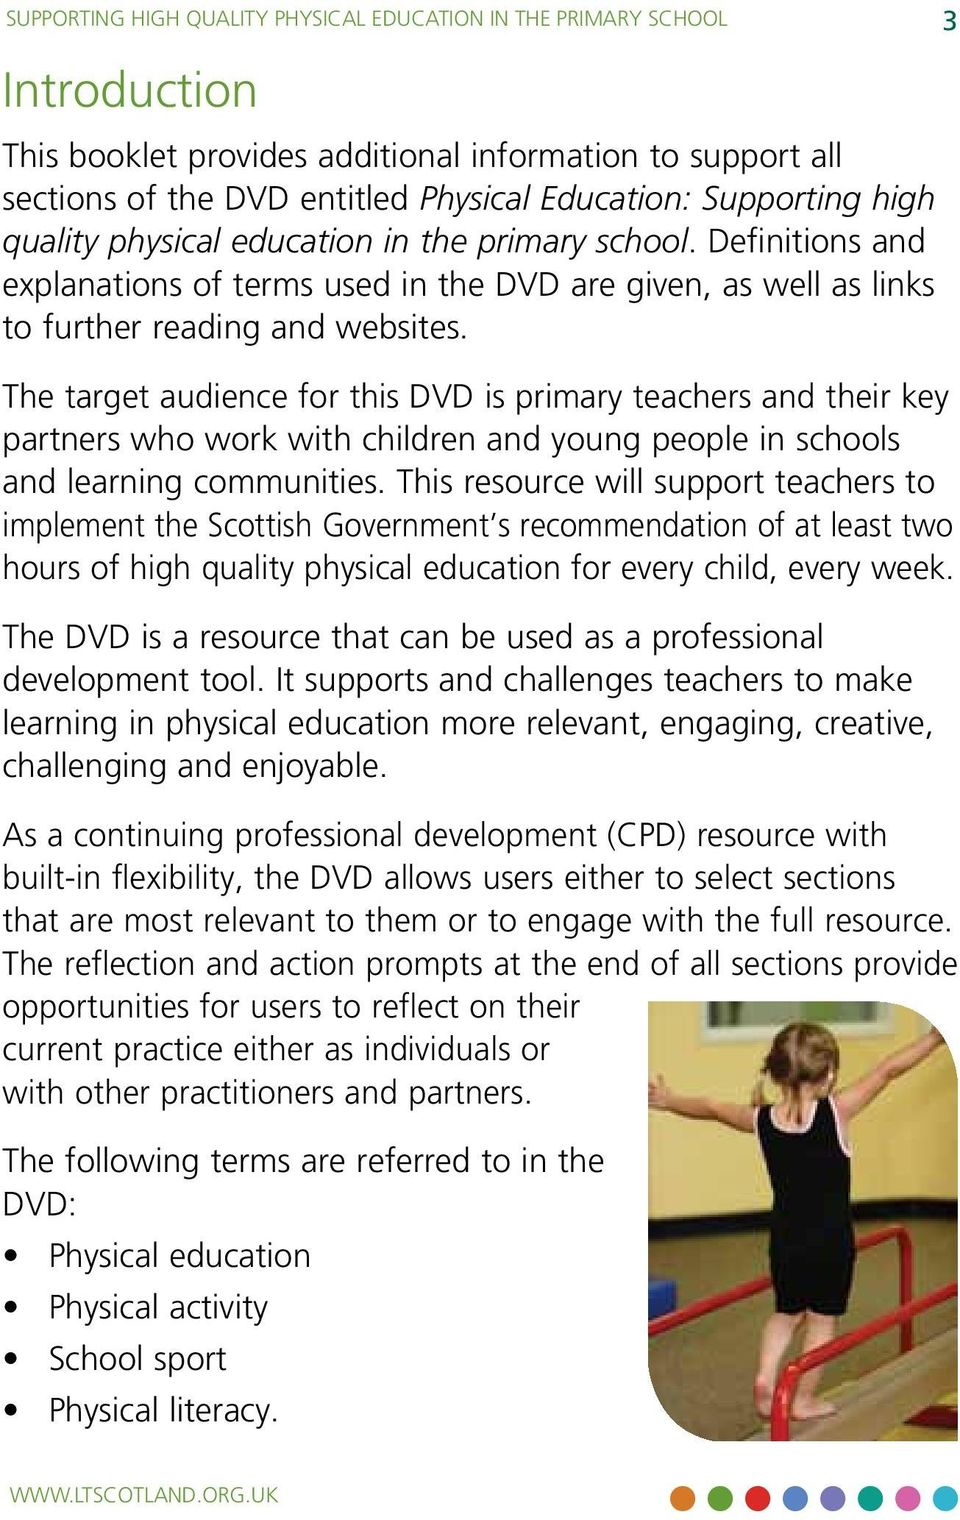 The target audience for this DVD is primary teachers and their key partners who work with children and young people in schools and learning communities.